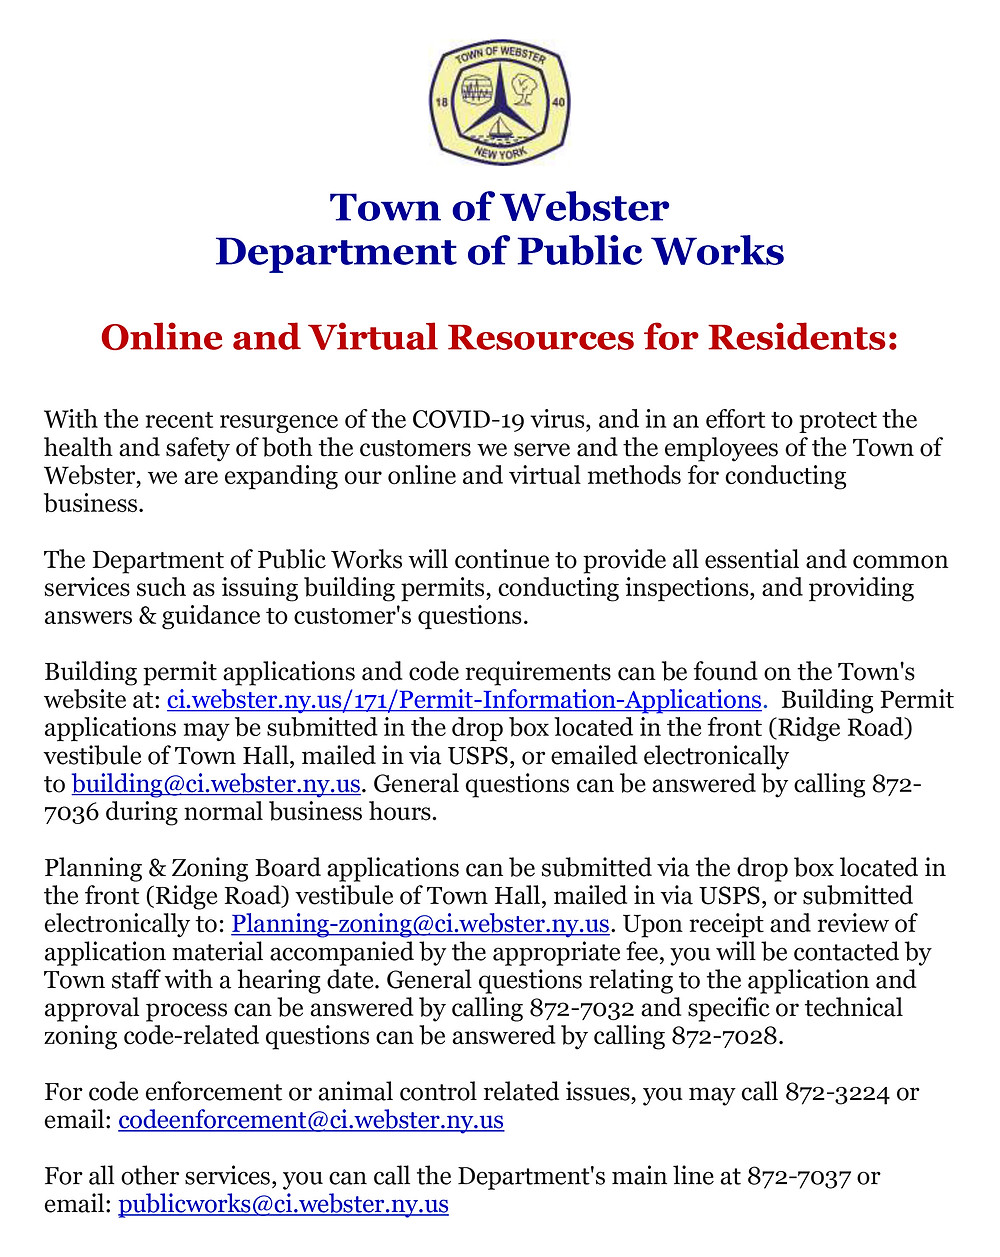 town-public-works-dept-offers-online-resources